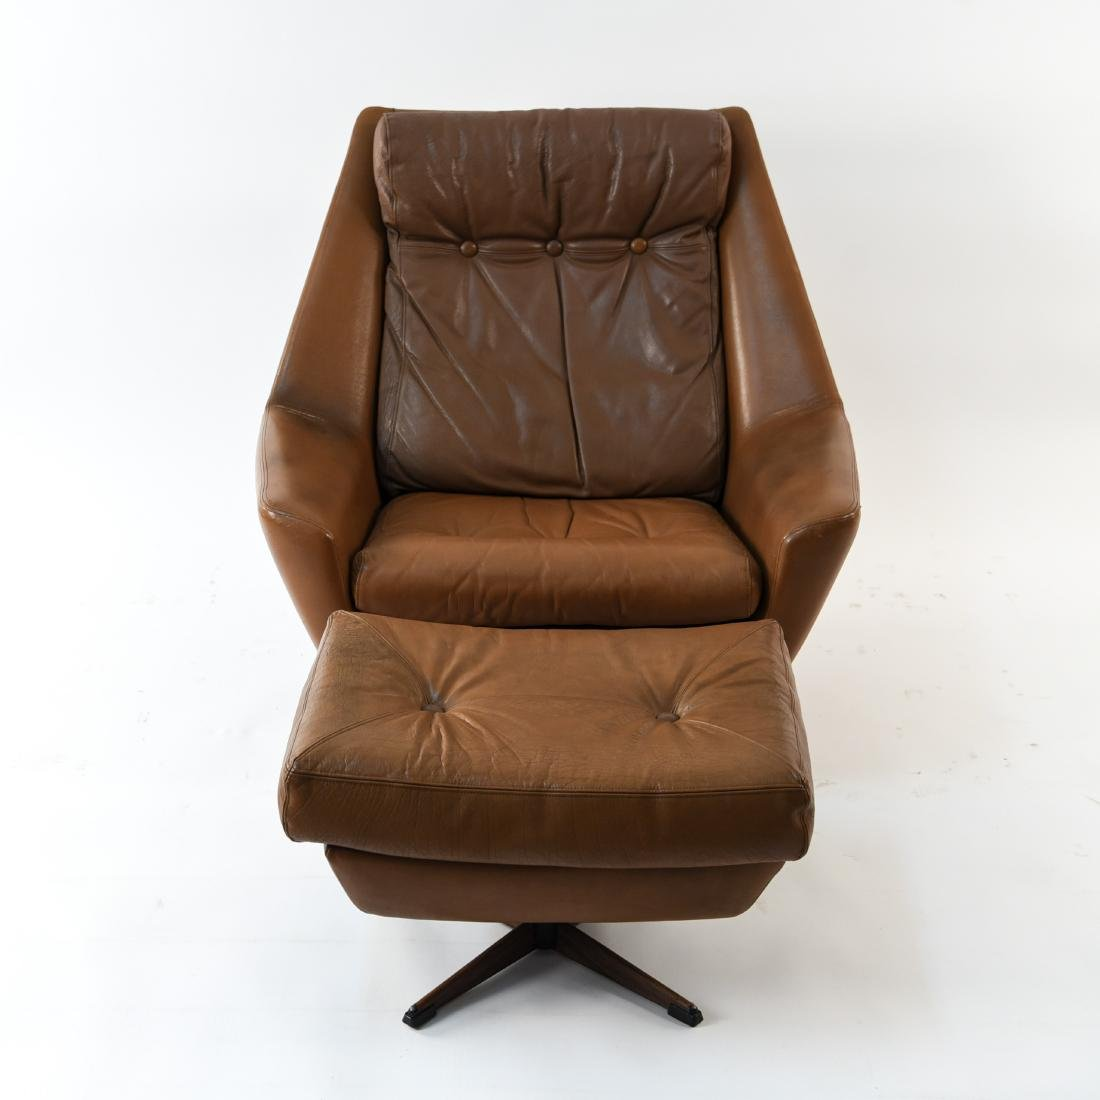 DANISH MID-CENTURY LEATHER LOUNGE CHAIR & OTTOMAN - 3